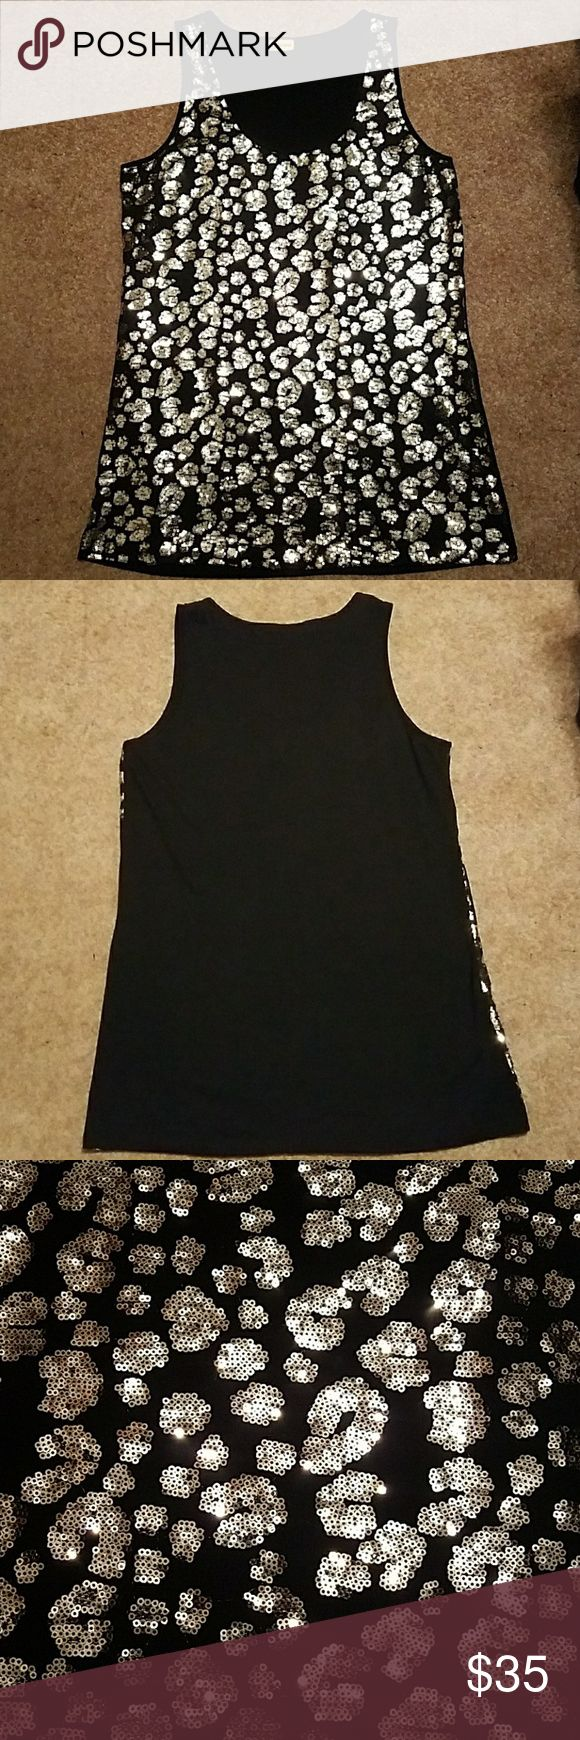 Sleeveless Sequence Dress Black comfy dress with silver sequence only on the front. Back is solid black comfy, soft, and stretchy material. Cut size of tag out, but Woman's size XL. Measures 20 inches wide and 33 inches long. Worn once on New Year's. Smoke free home. Make an offer!! Wildcat Dresses